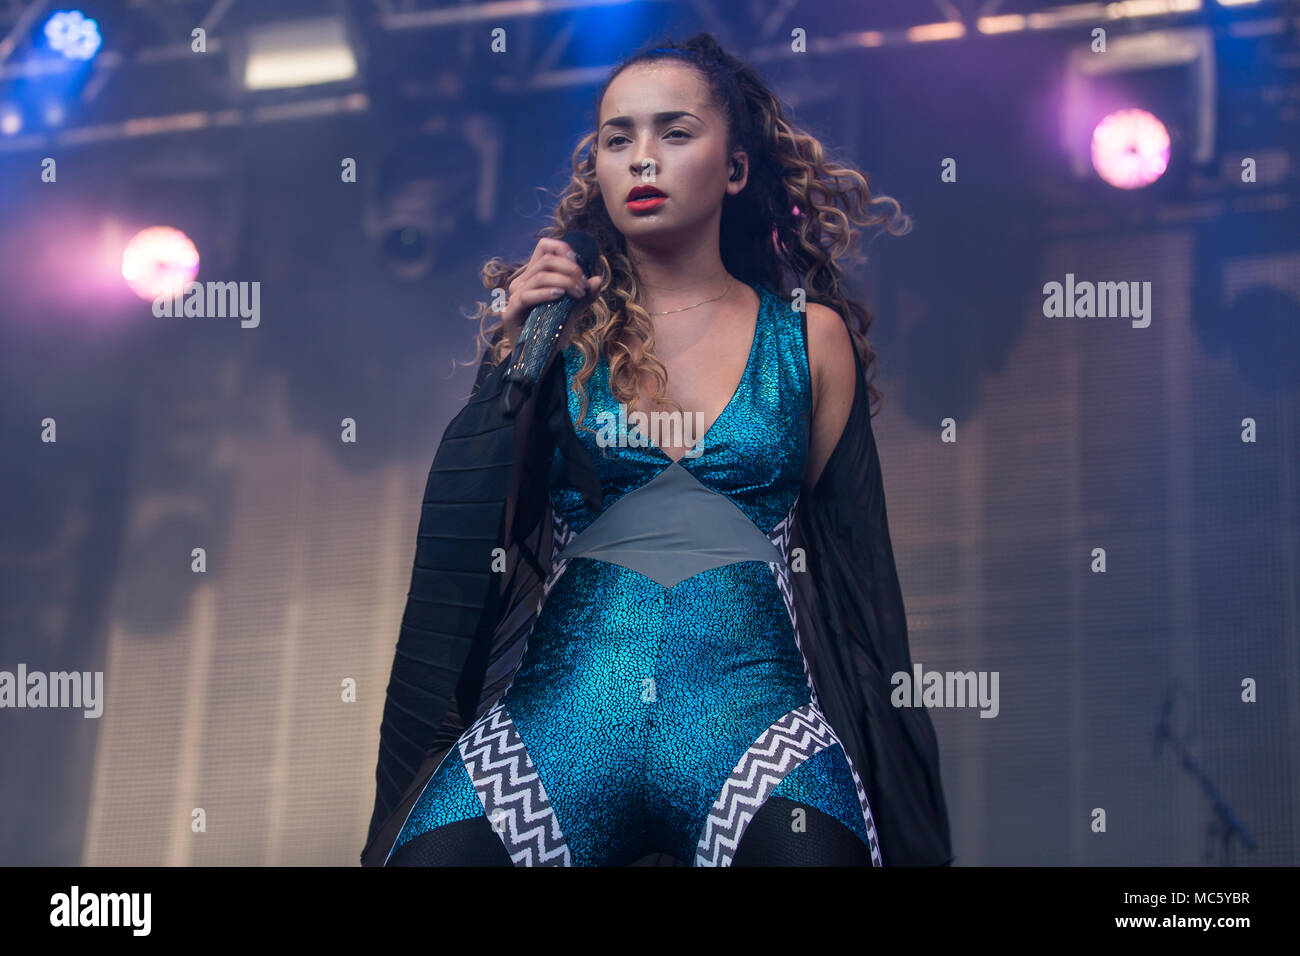 English pop and R&B singer Ella Eyre live at the 26th Heitere Open Air in Zofingen, Aargau, Switzerland Stock Photo